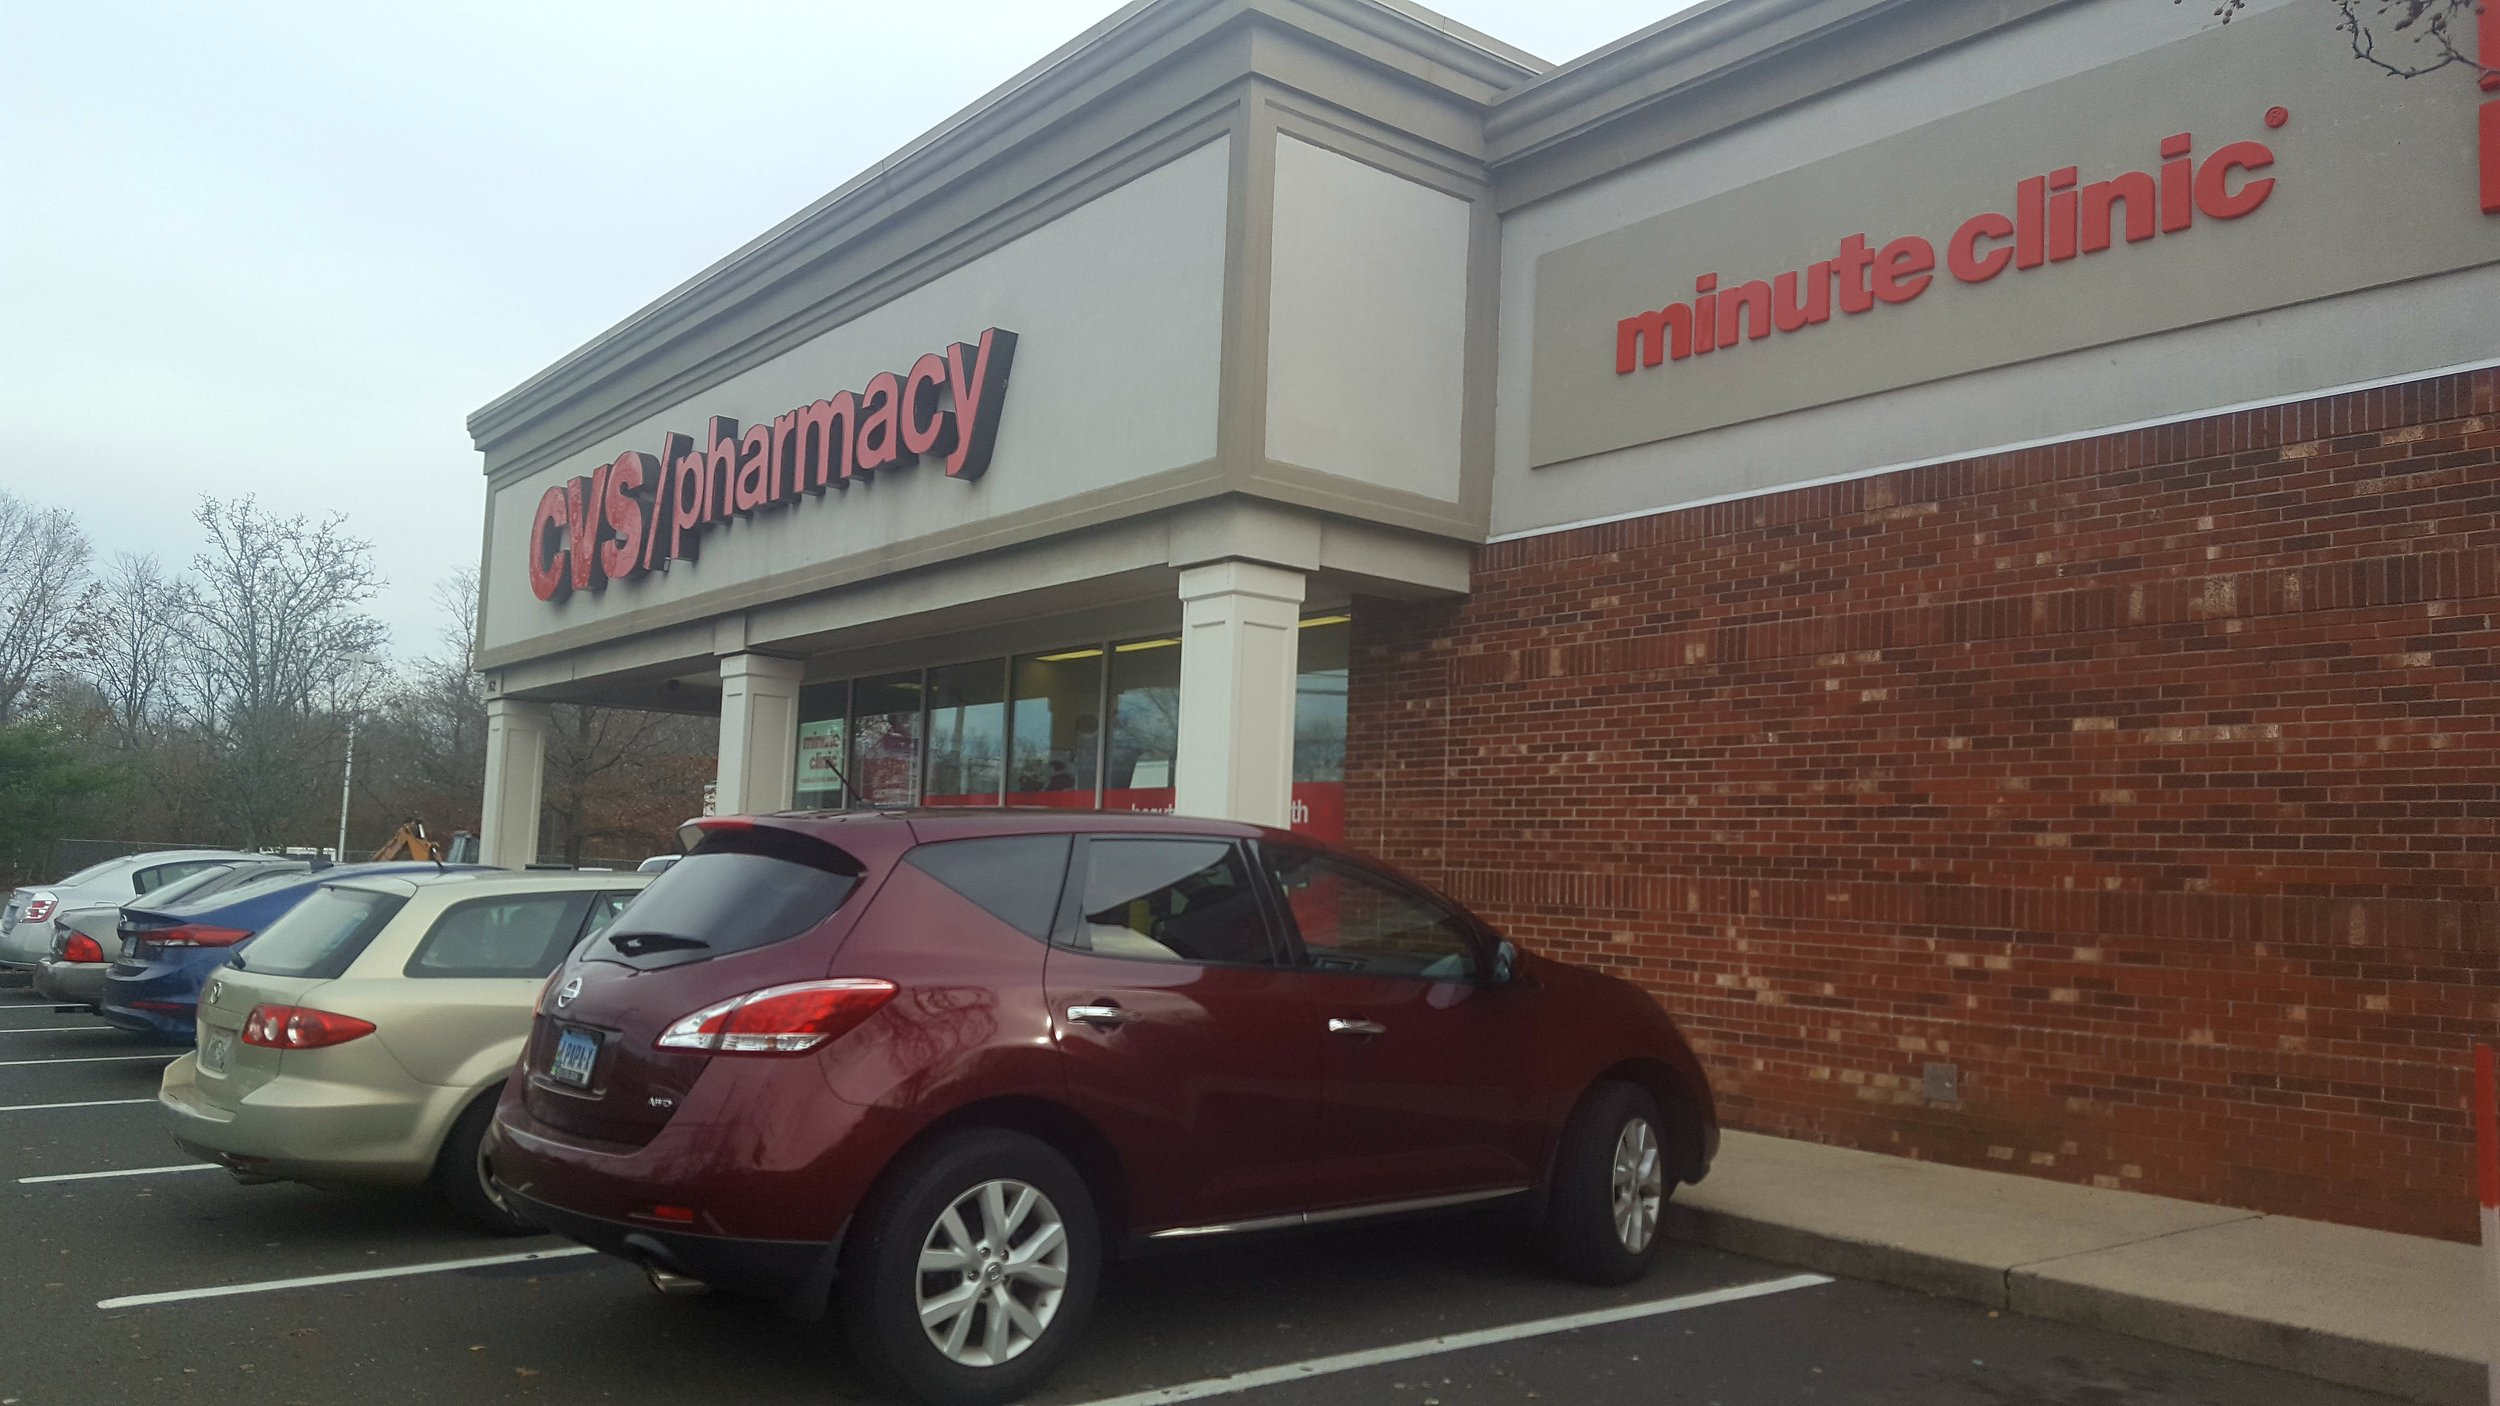 The deal could lead to changes for CVS stores across the country, including this one in North Haven.